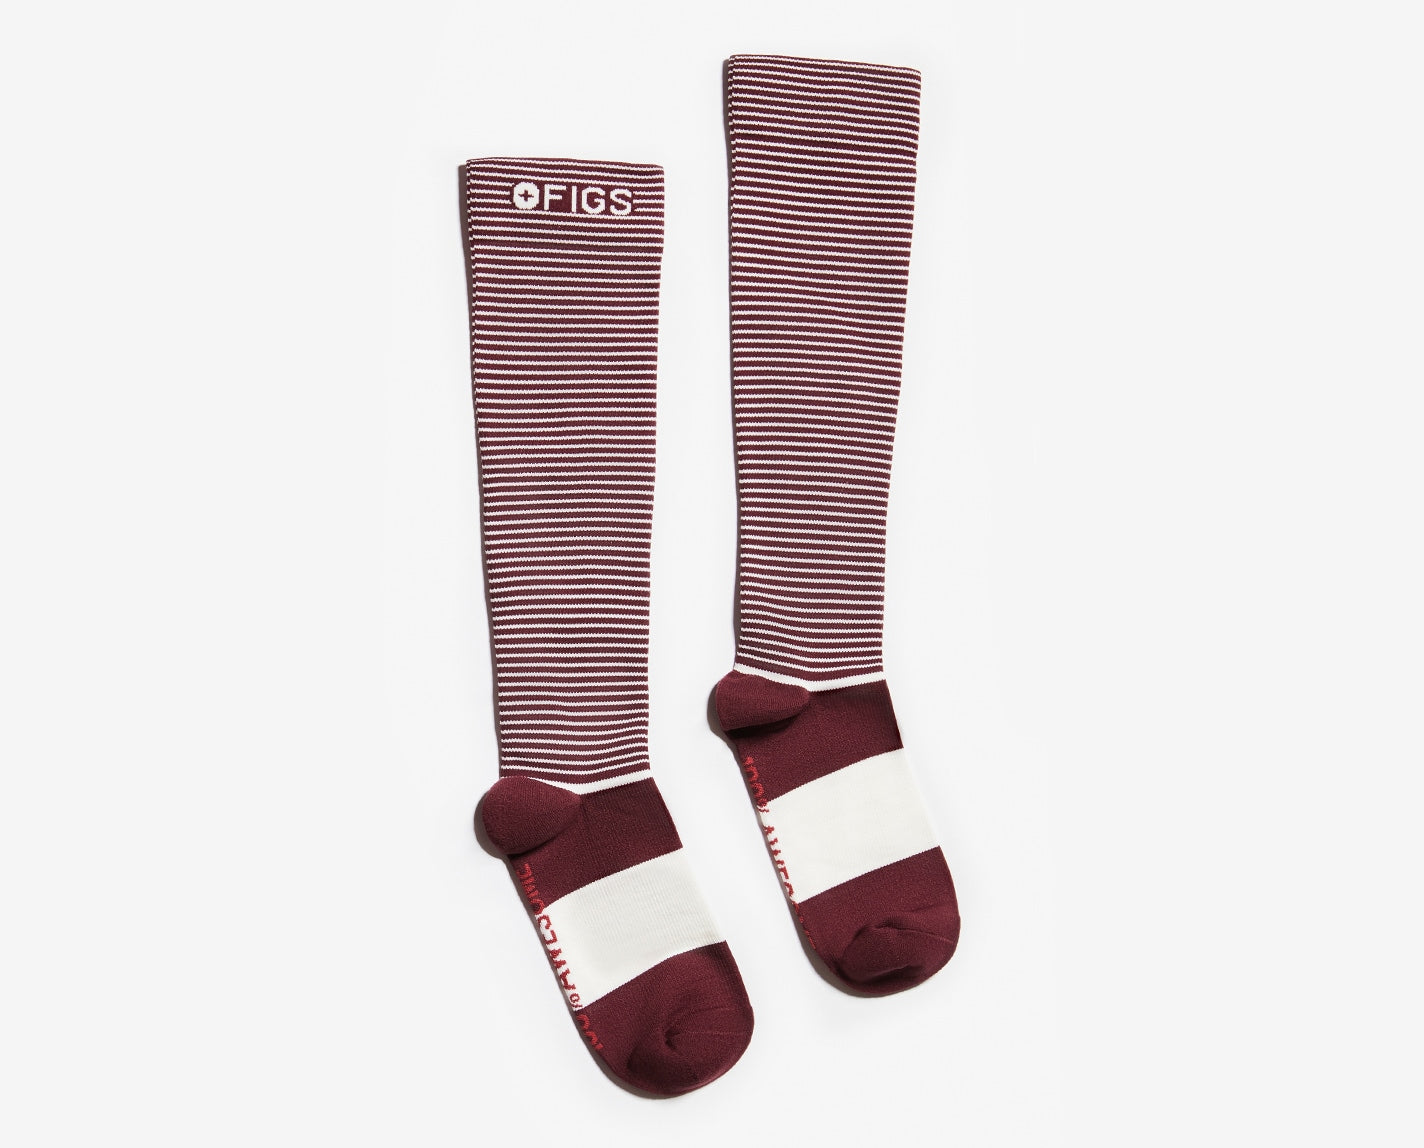 Show your true stripes! Our Double Stripe 100% Awesome Compression Socks conveniently match a whole bunch of your FIGS, plus they help to relieve tired and achy legs. They're also breathable, ridiculously soft and feature our proprietary FIONdry moisture-wicking technology.